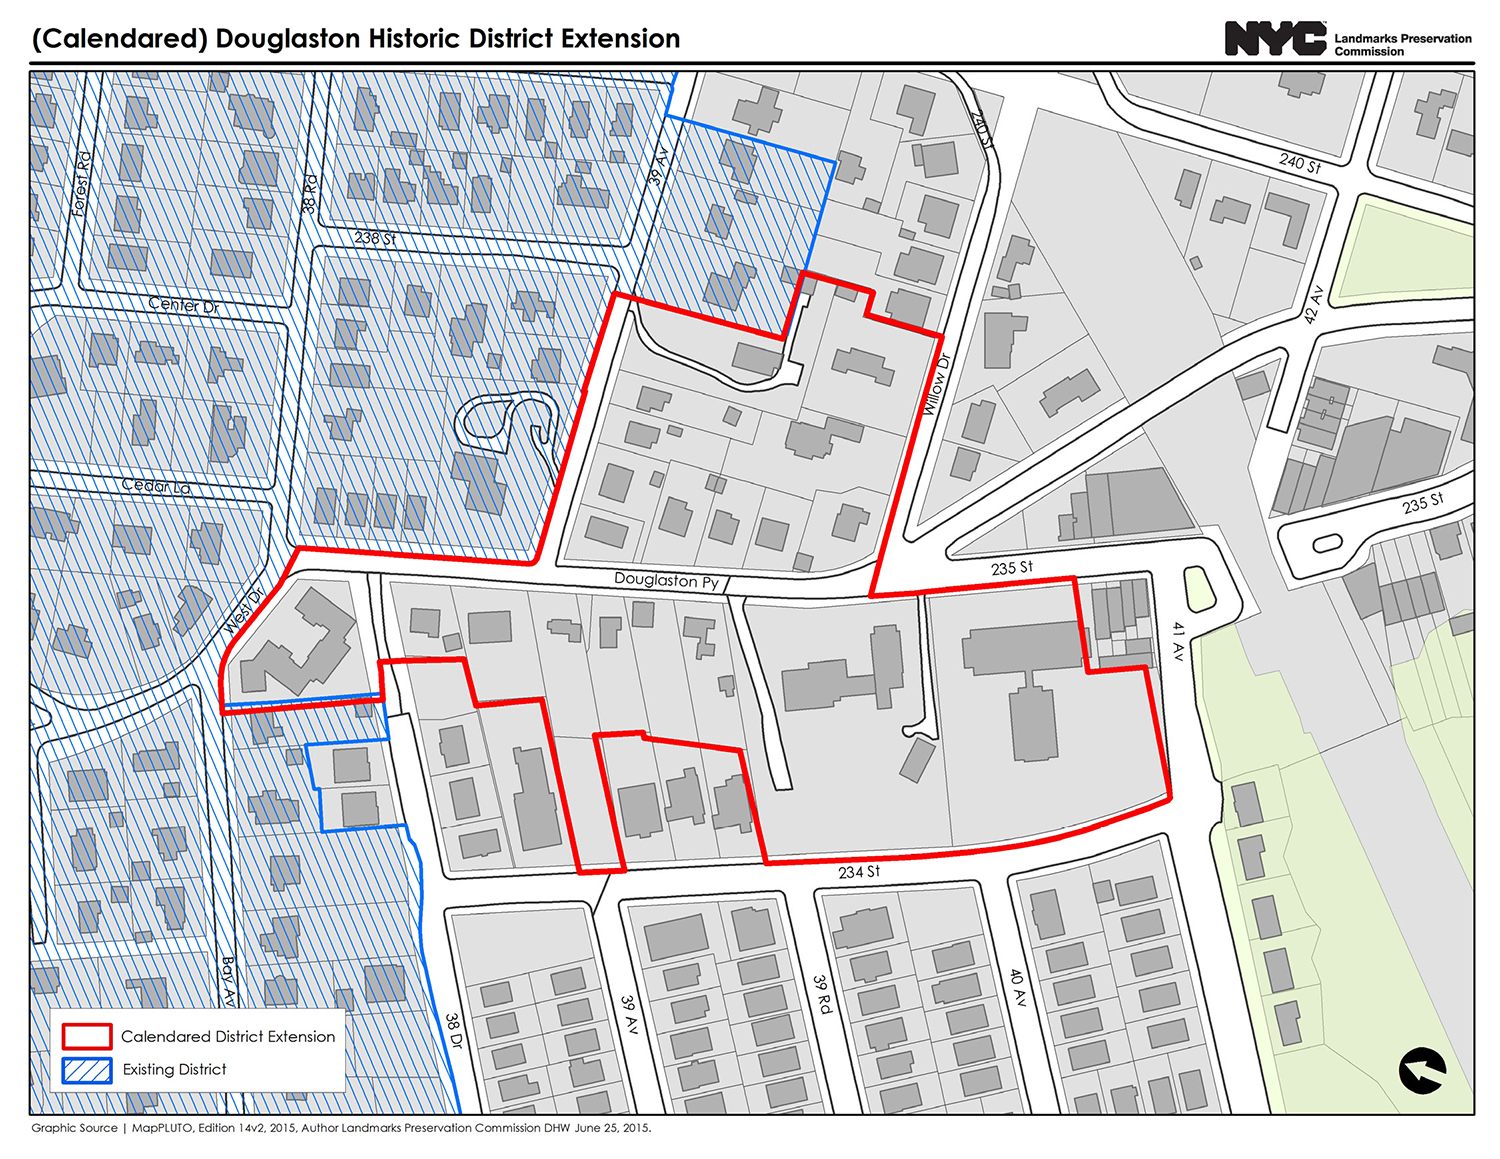 Proposed Douglaston Historic District Extension